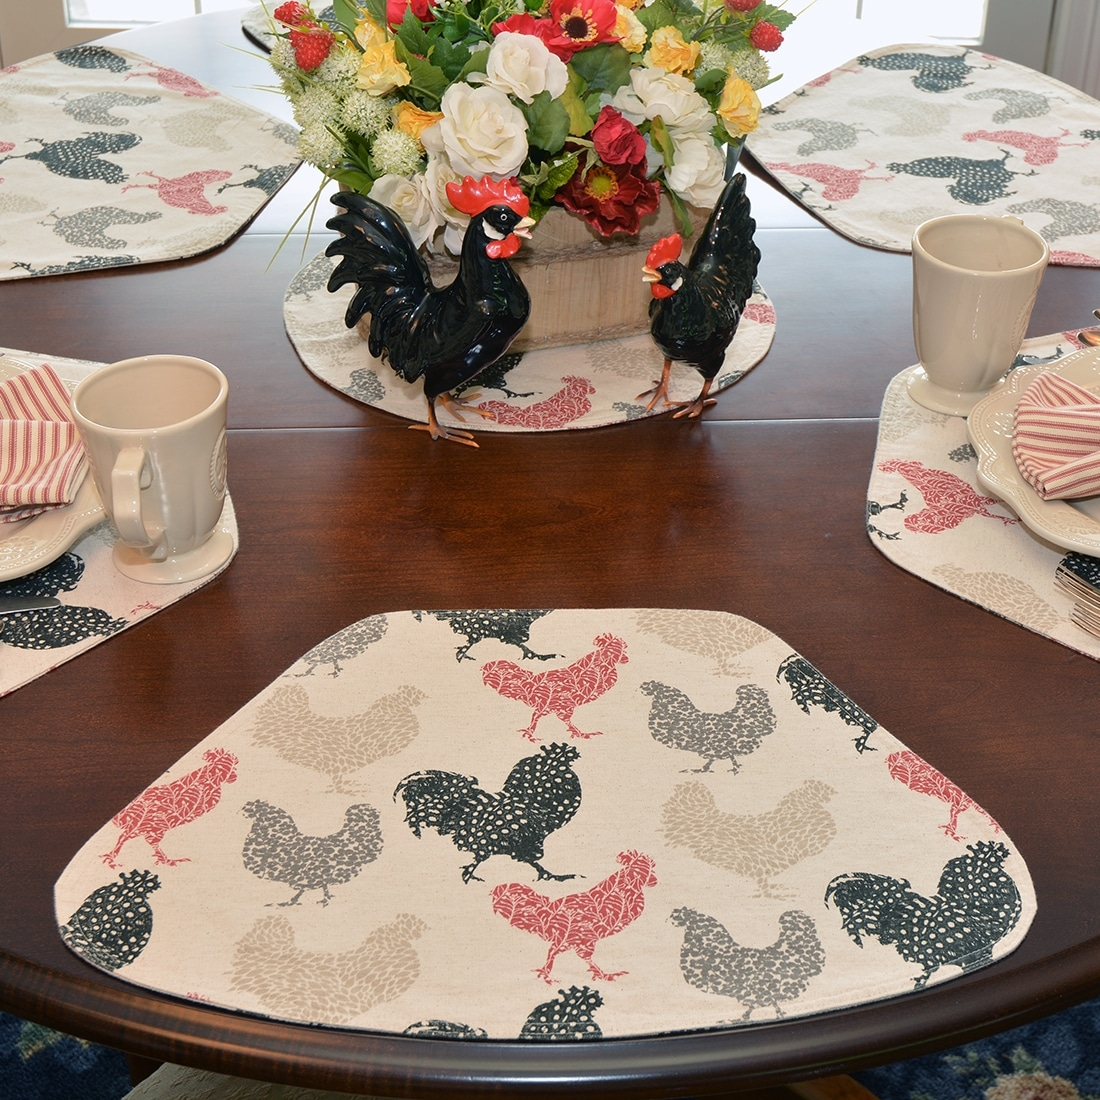 Sweet Pea Linens - Rifton Red Rooster Wedge-Shaped Placemats - Set of Four plus Center Round-Charger (SKU#: RS5-1006-C8) - Table Setting